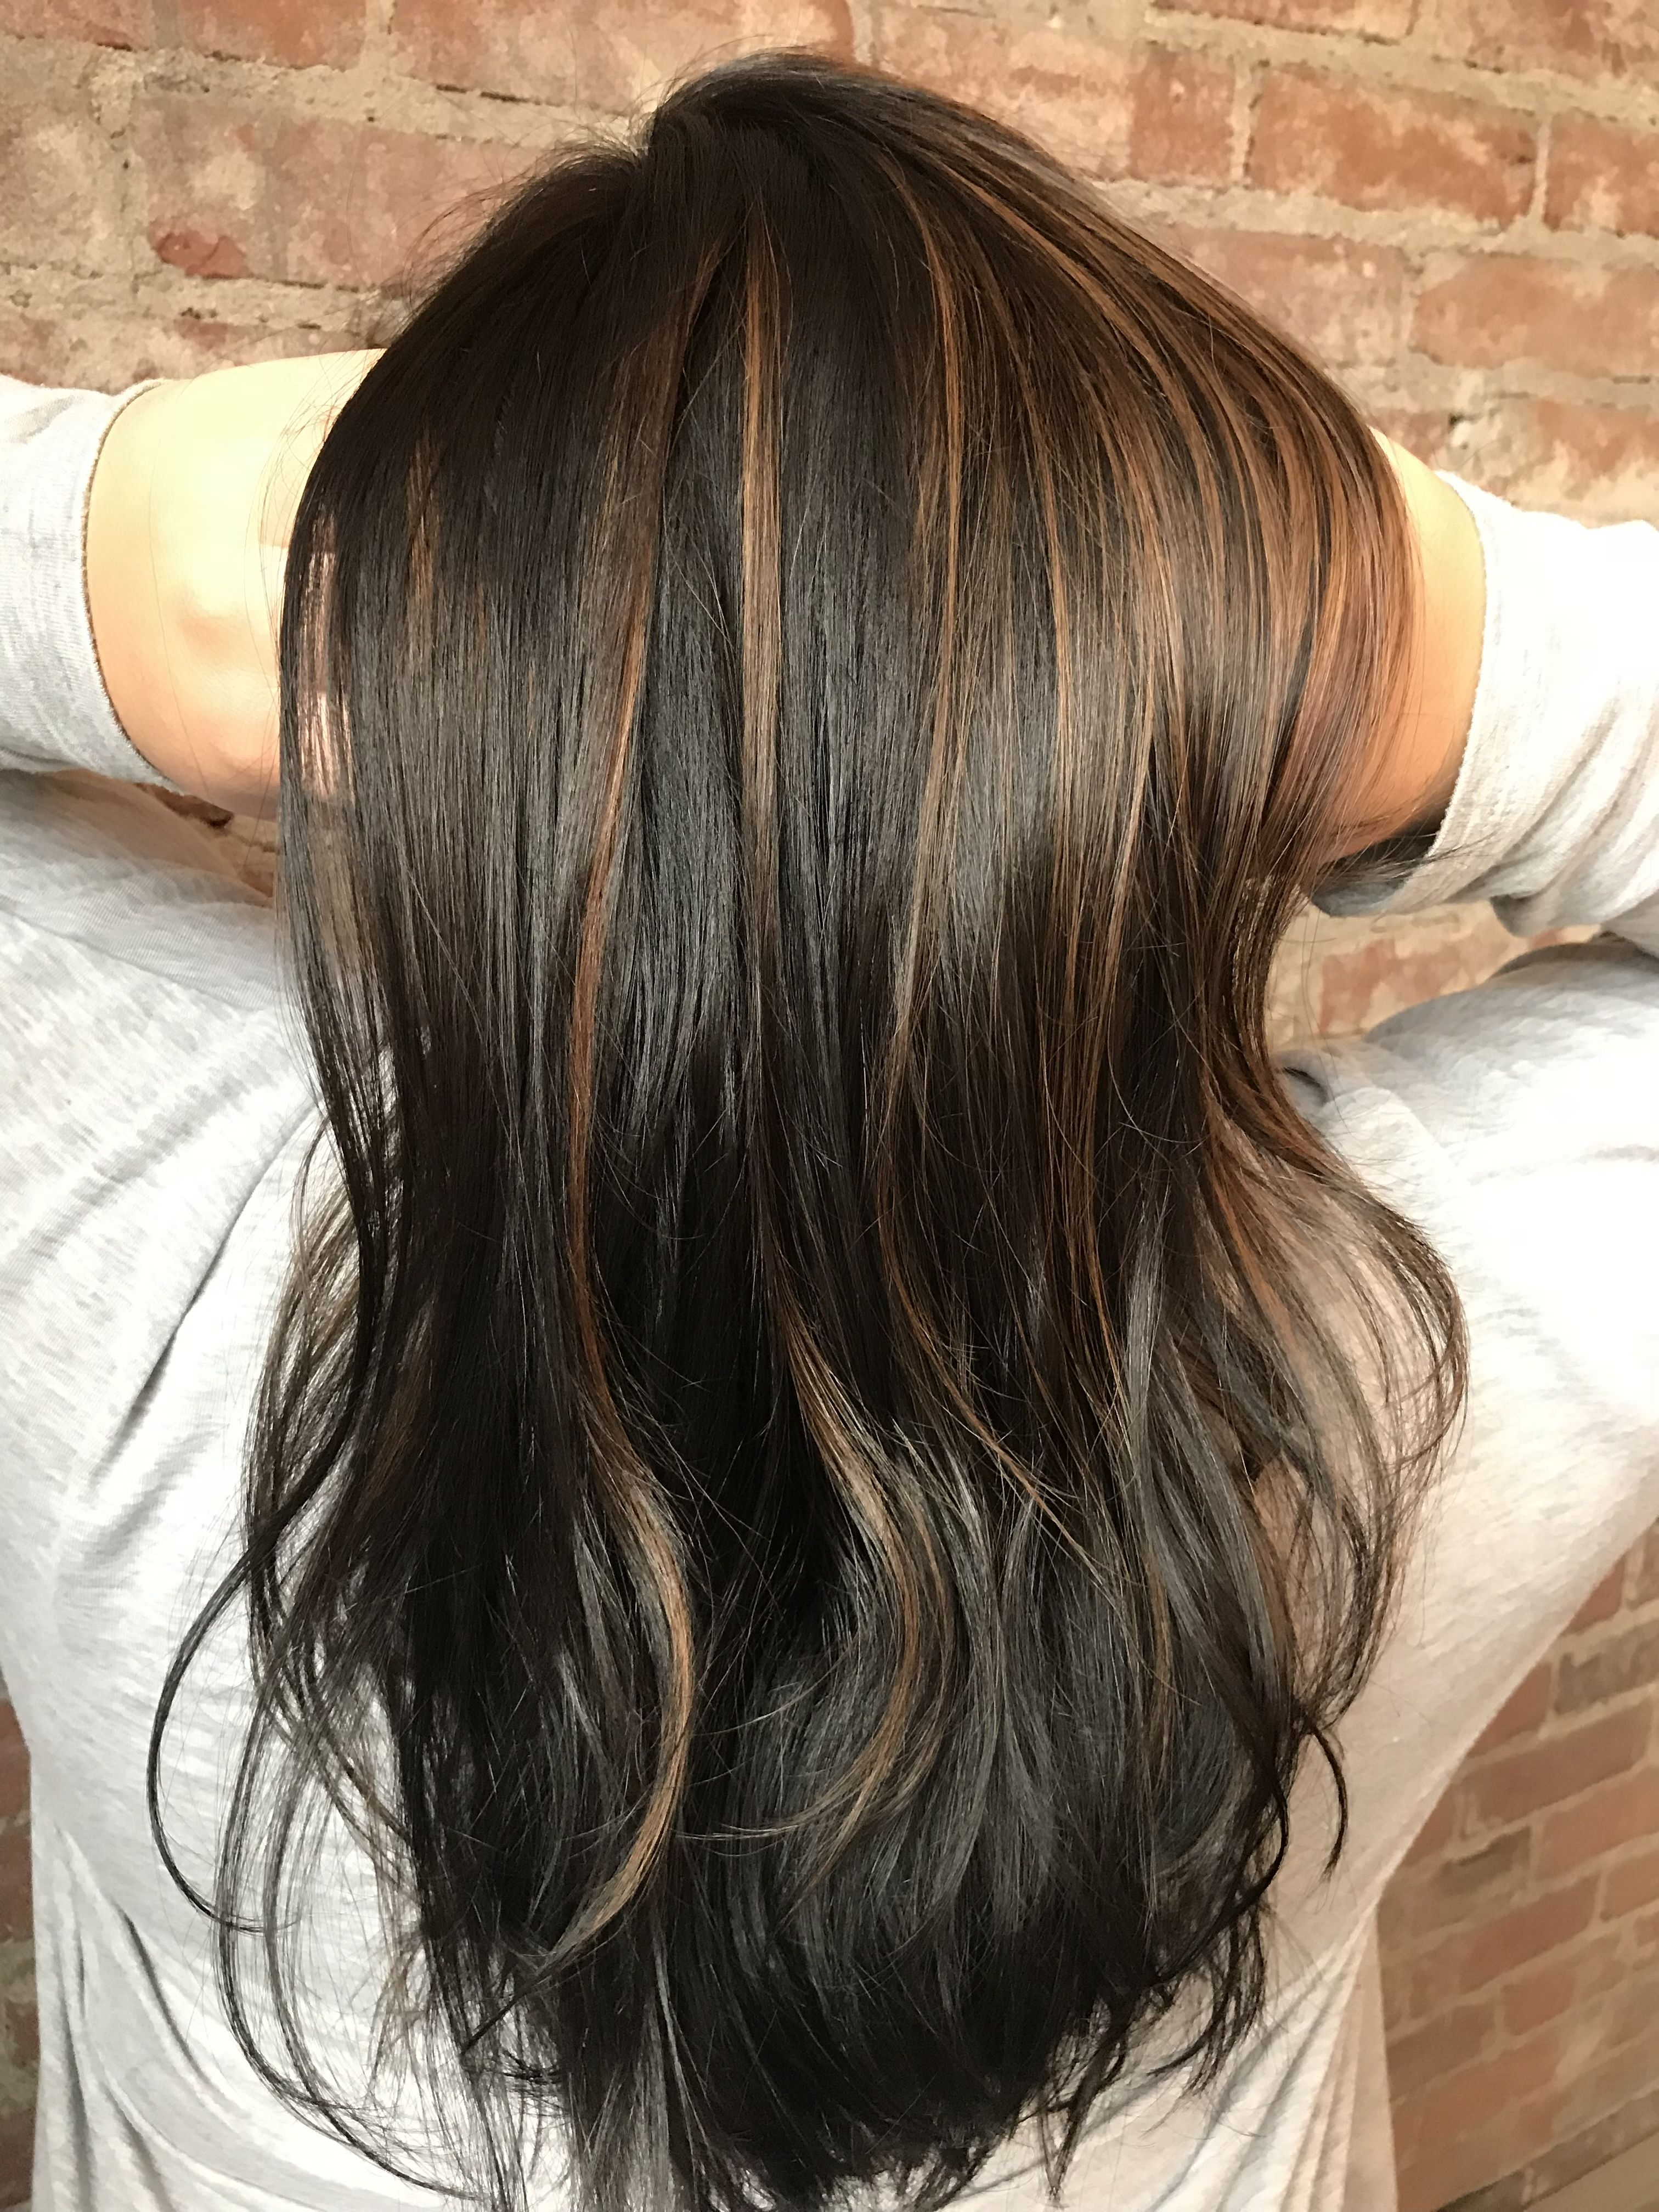 Well Liked Warm Toned Brown Hairstyles With Caramel Balayage Within Caramel Balayage. Brunette Hair. Dark Brown Hair (View 20 of 20)